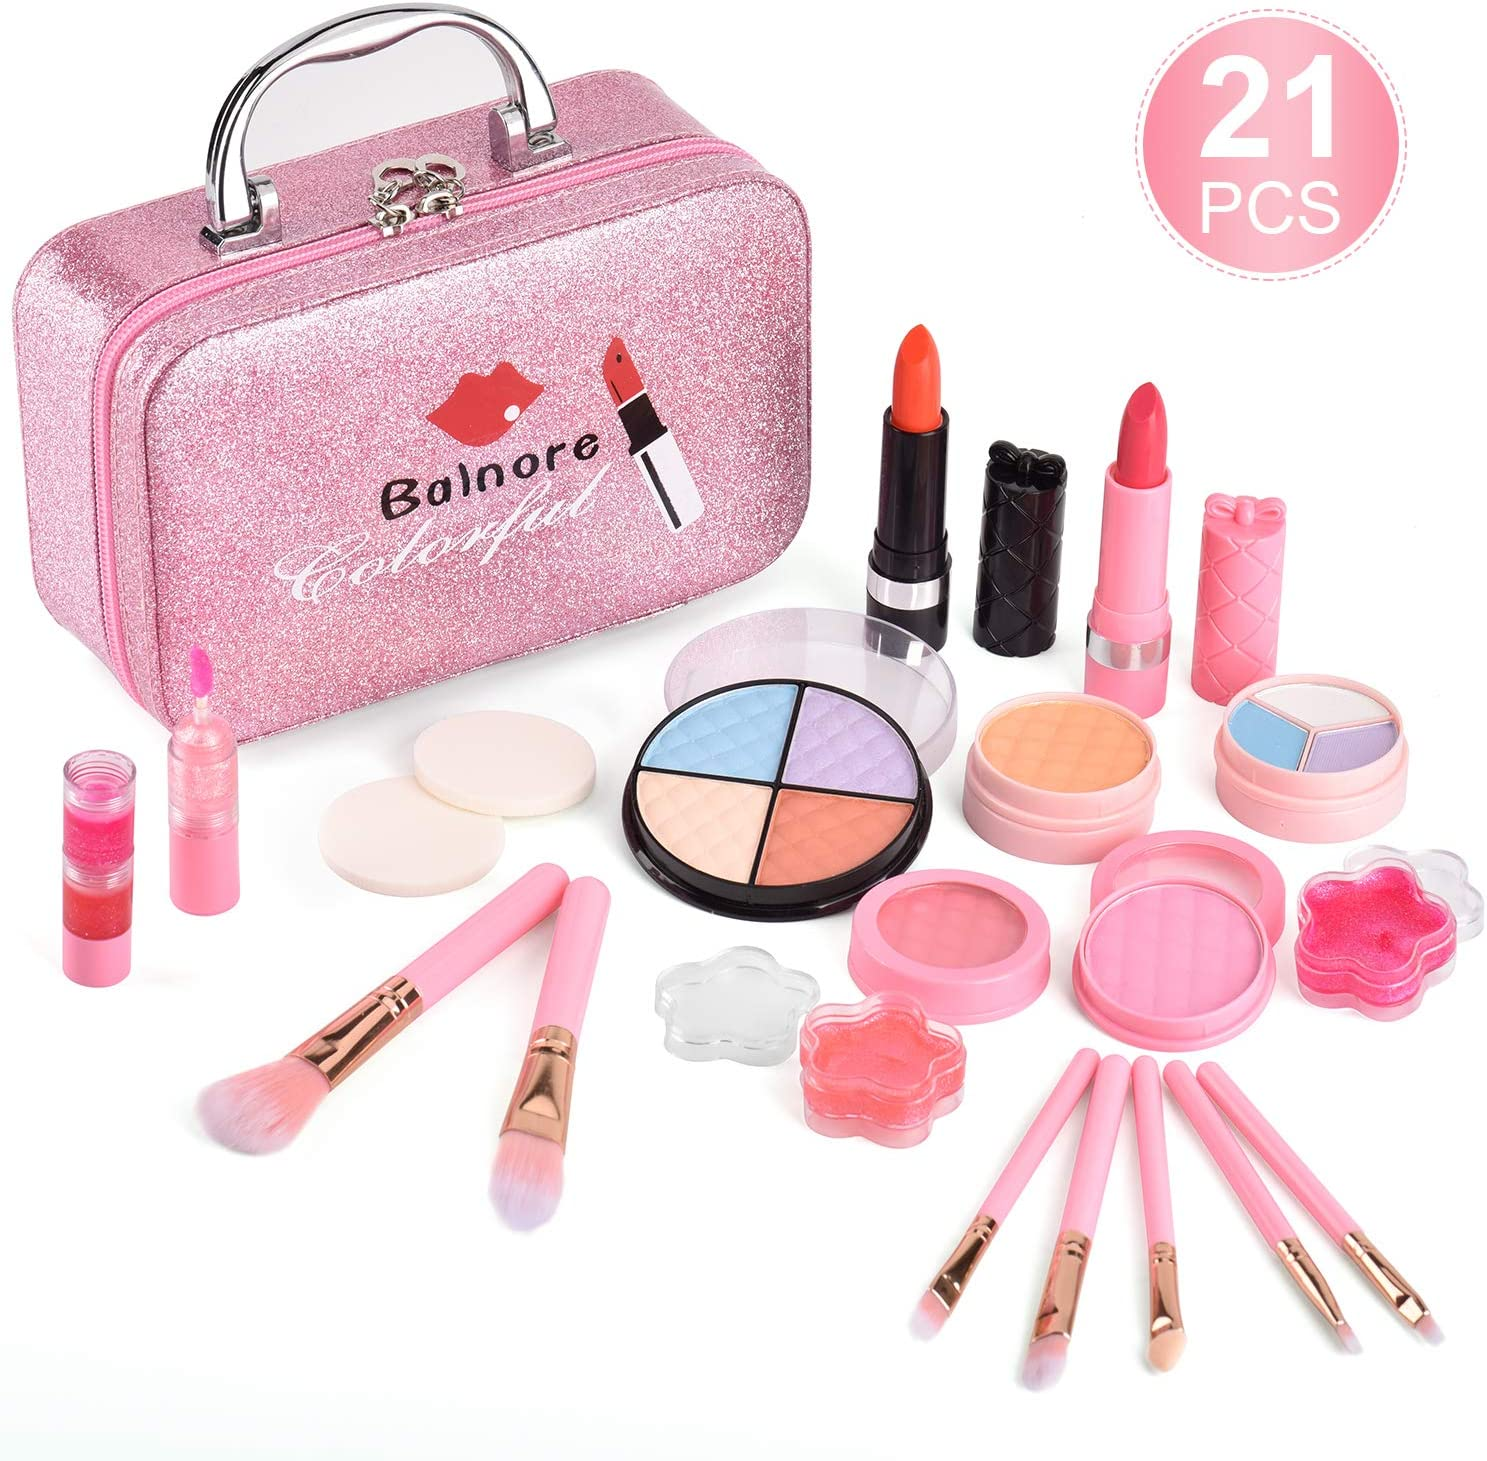 Balnore 21 Pcs Washable Makeup Toy Set, Safe & Non-Toxic,Real Cosmetic Beauty Set for Kids Play Game Halloween Christmas Birthday Party